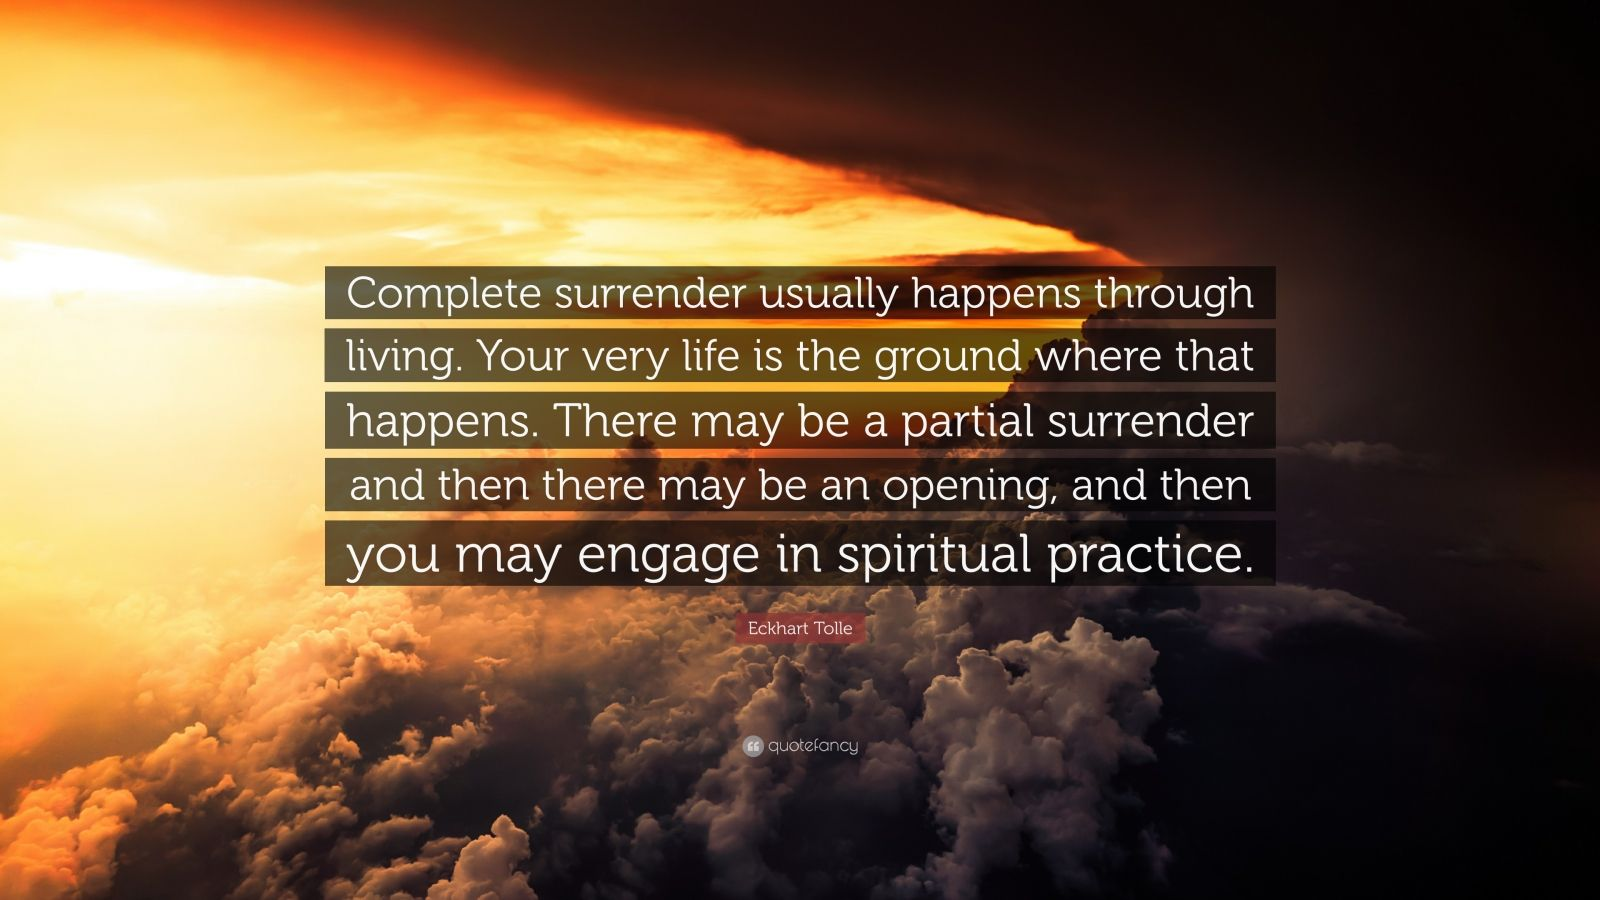 """Eckhart Tolle Quote: """"Complete surrender usually happens through living. Your very life is the ground where that happens. There may be a partial surrender and then there may be an opening, and then you may engage in spiritual practice."""""""